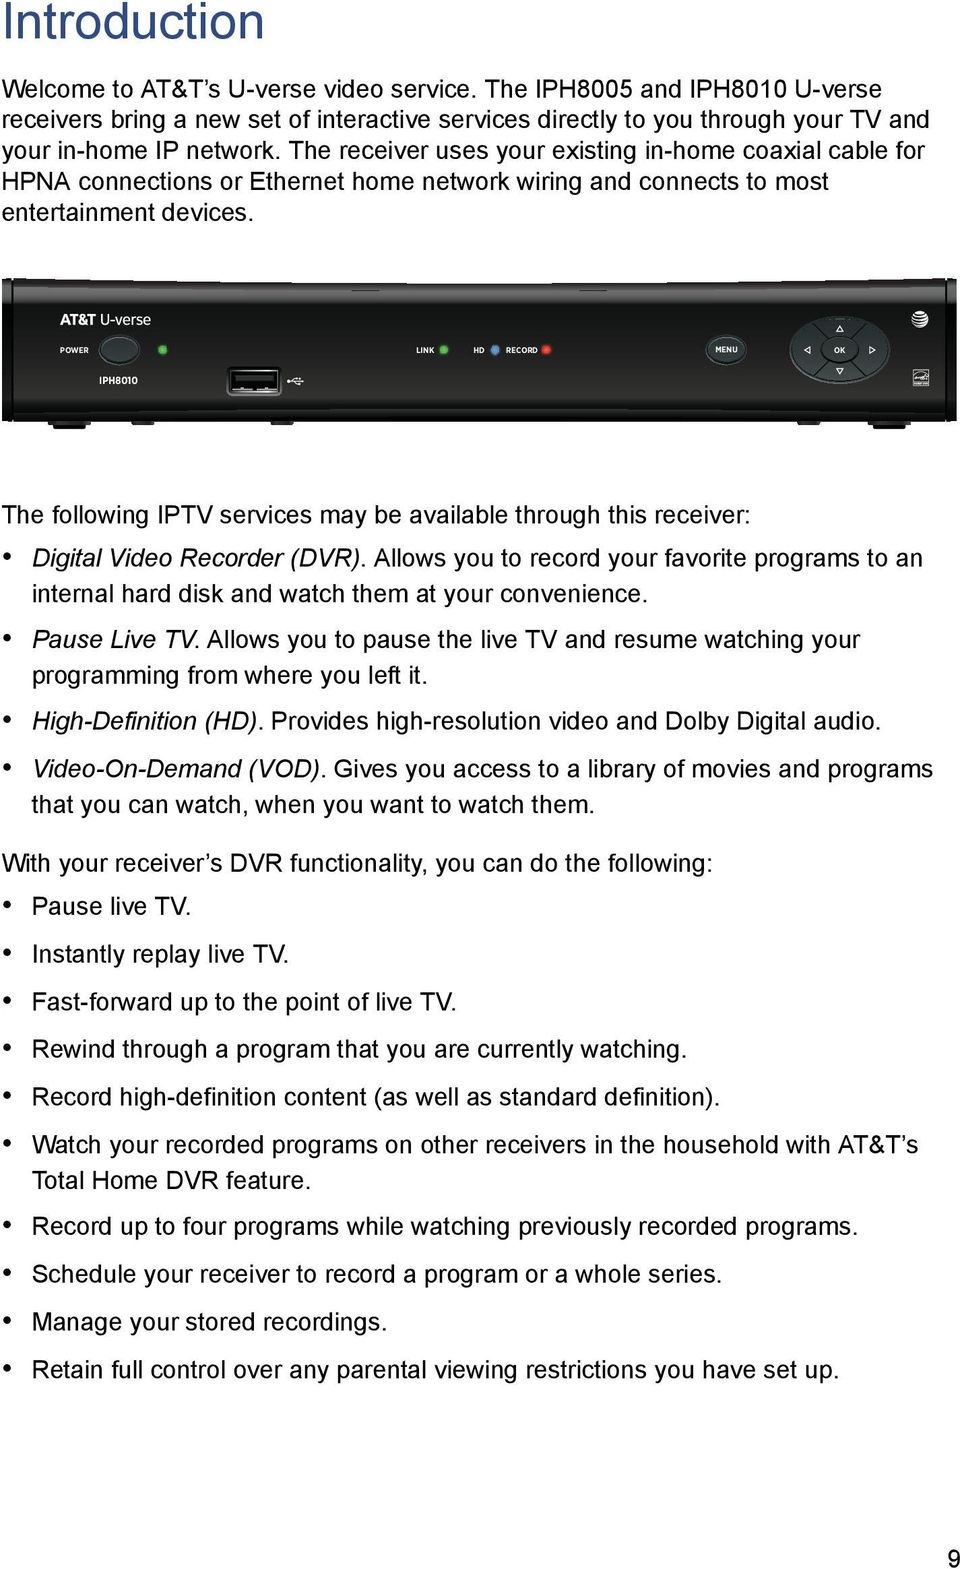 Pace Iptv Receivers Installation Manual Pdf At Amp T U Verse Home Wiring Powe Ink Hd Ecod Menu Ok Iph8010 The Following Services May Be Available Through This